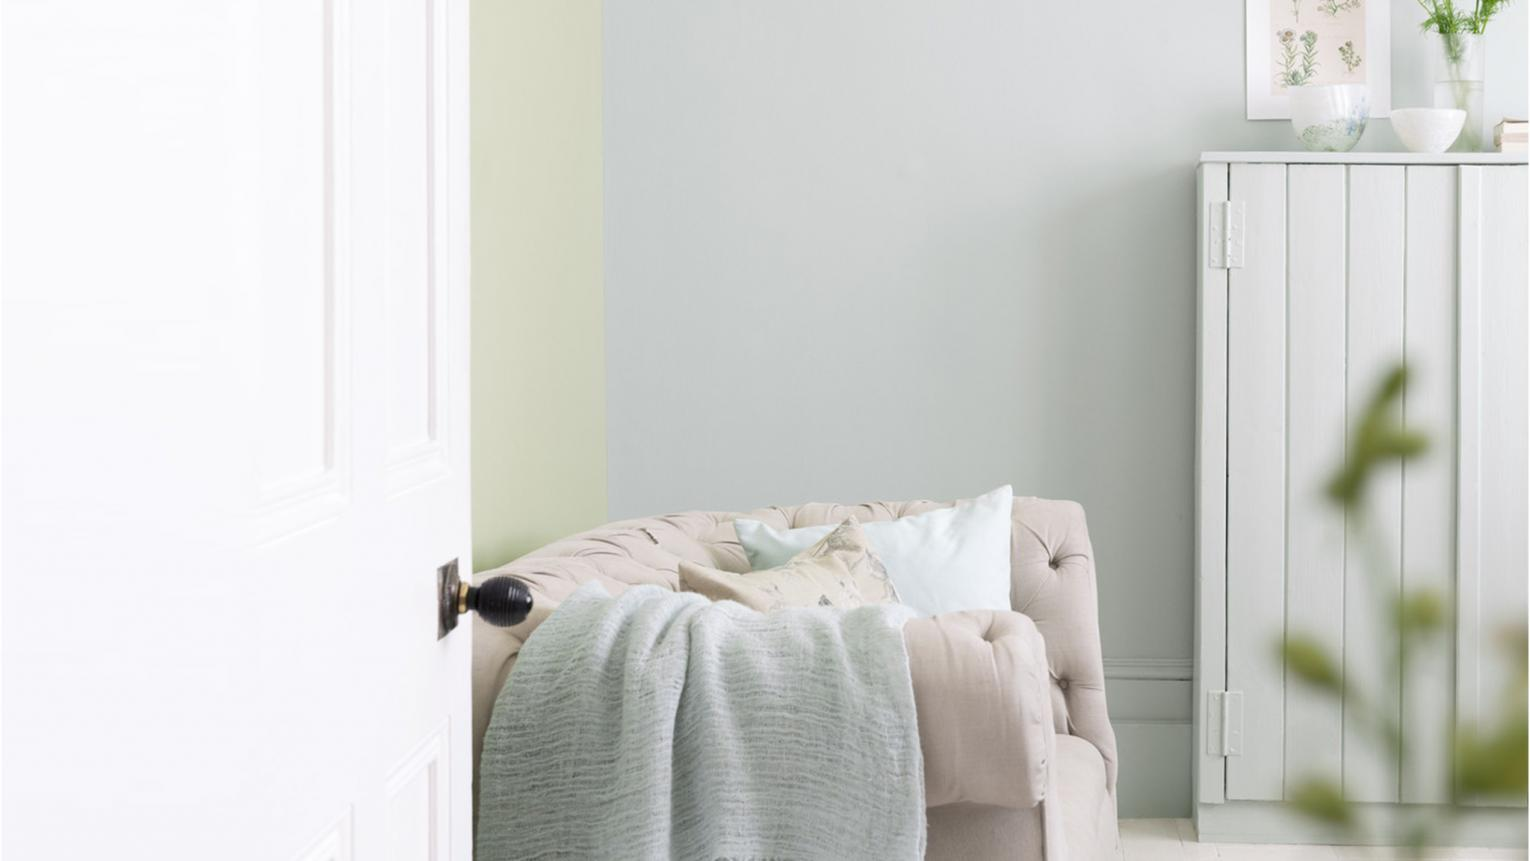 For a fashionable take on the classic pastel look, try this colour palette of muted gelato hues.